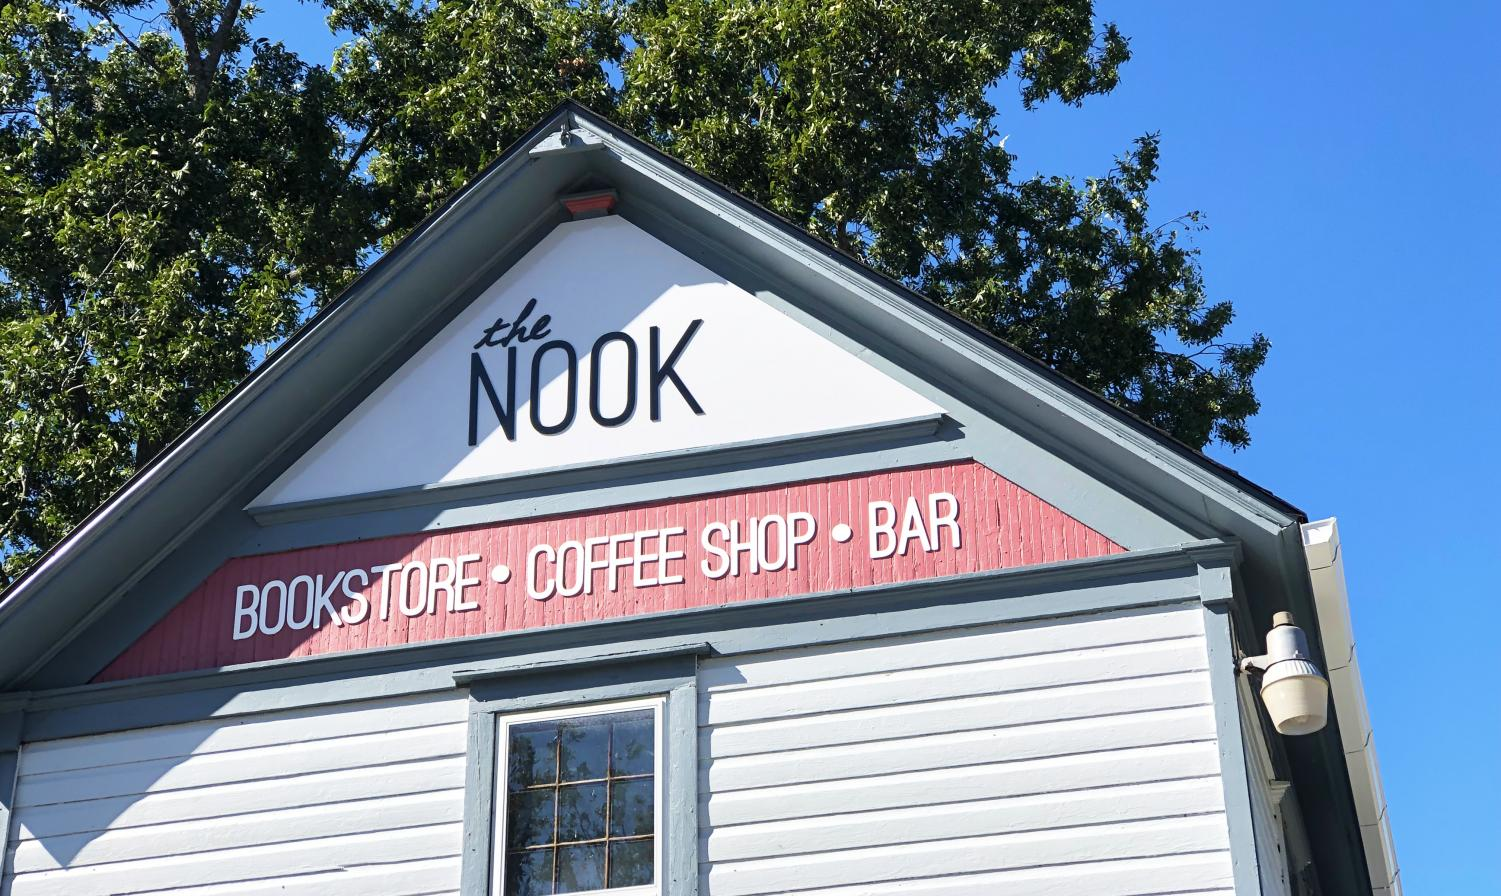 The Nook is located on the corner of 8th St. and Grove St. in downtown Baldwin City.